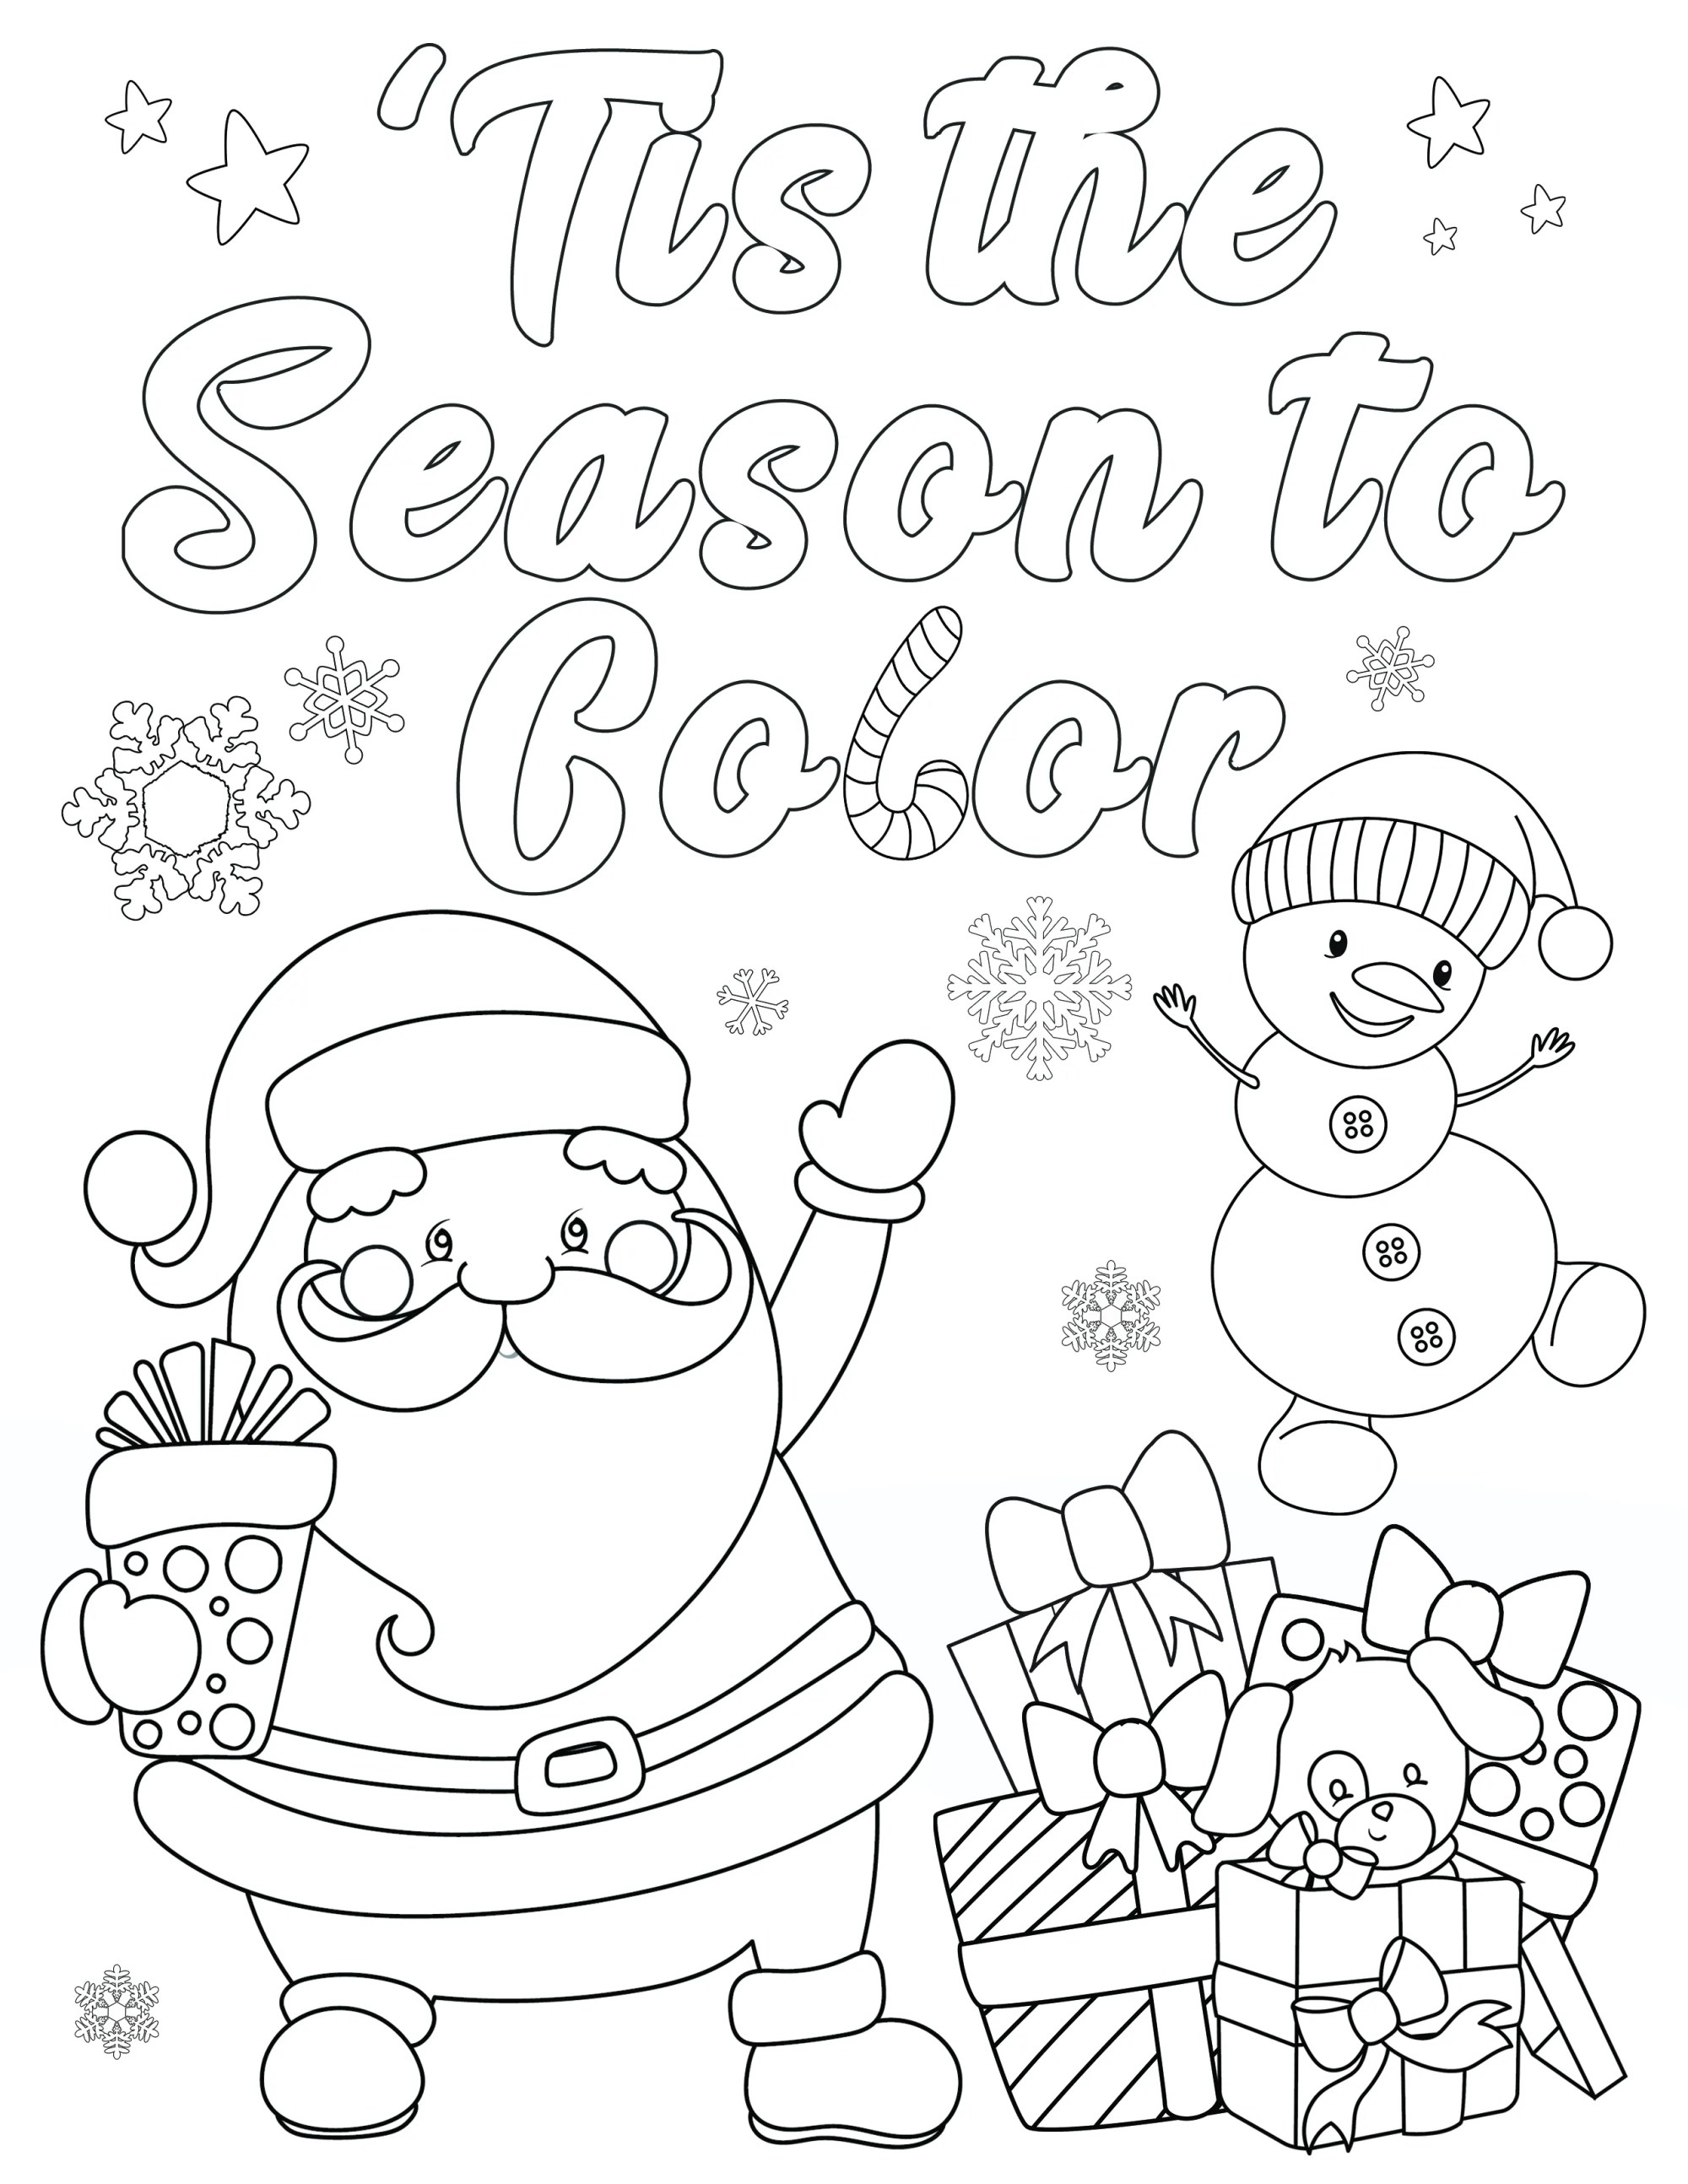 hight resolution of FREE Christmas Coloring Pages for Adults and Kids - Happiness is Homemade